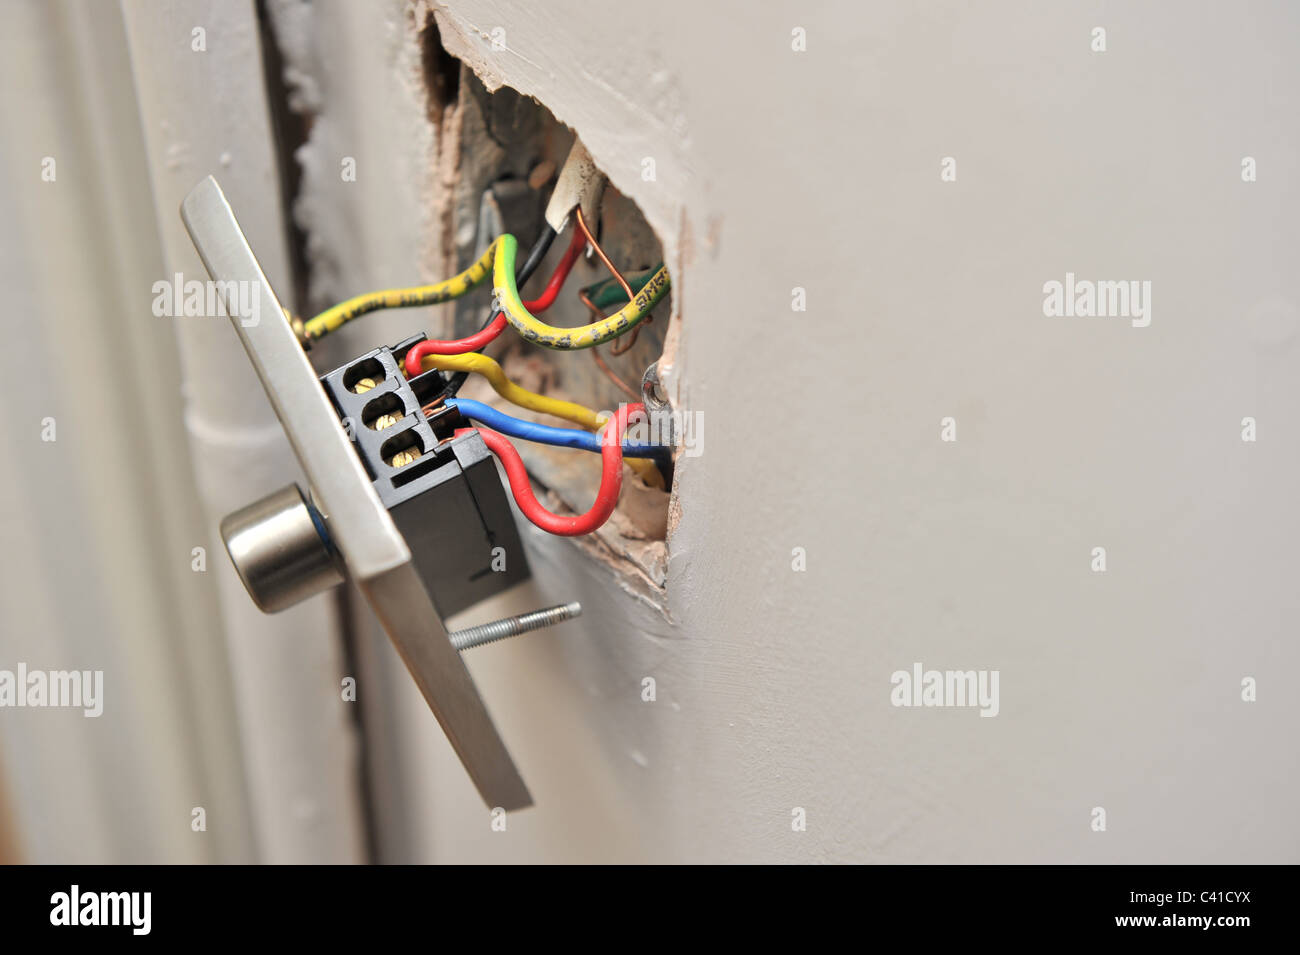 a faulty house light dimmer switch pulled away from wall showing rh alamy com Do It Yourself Home Wiring Basic Electrical Wiring Diagrams